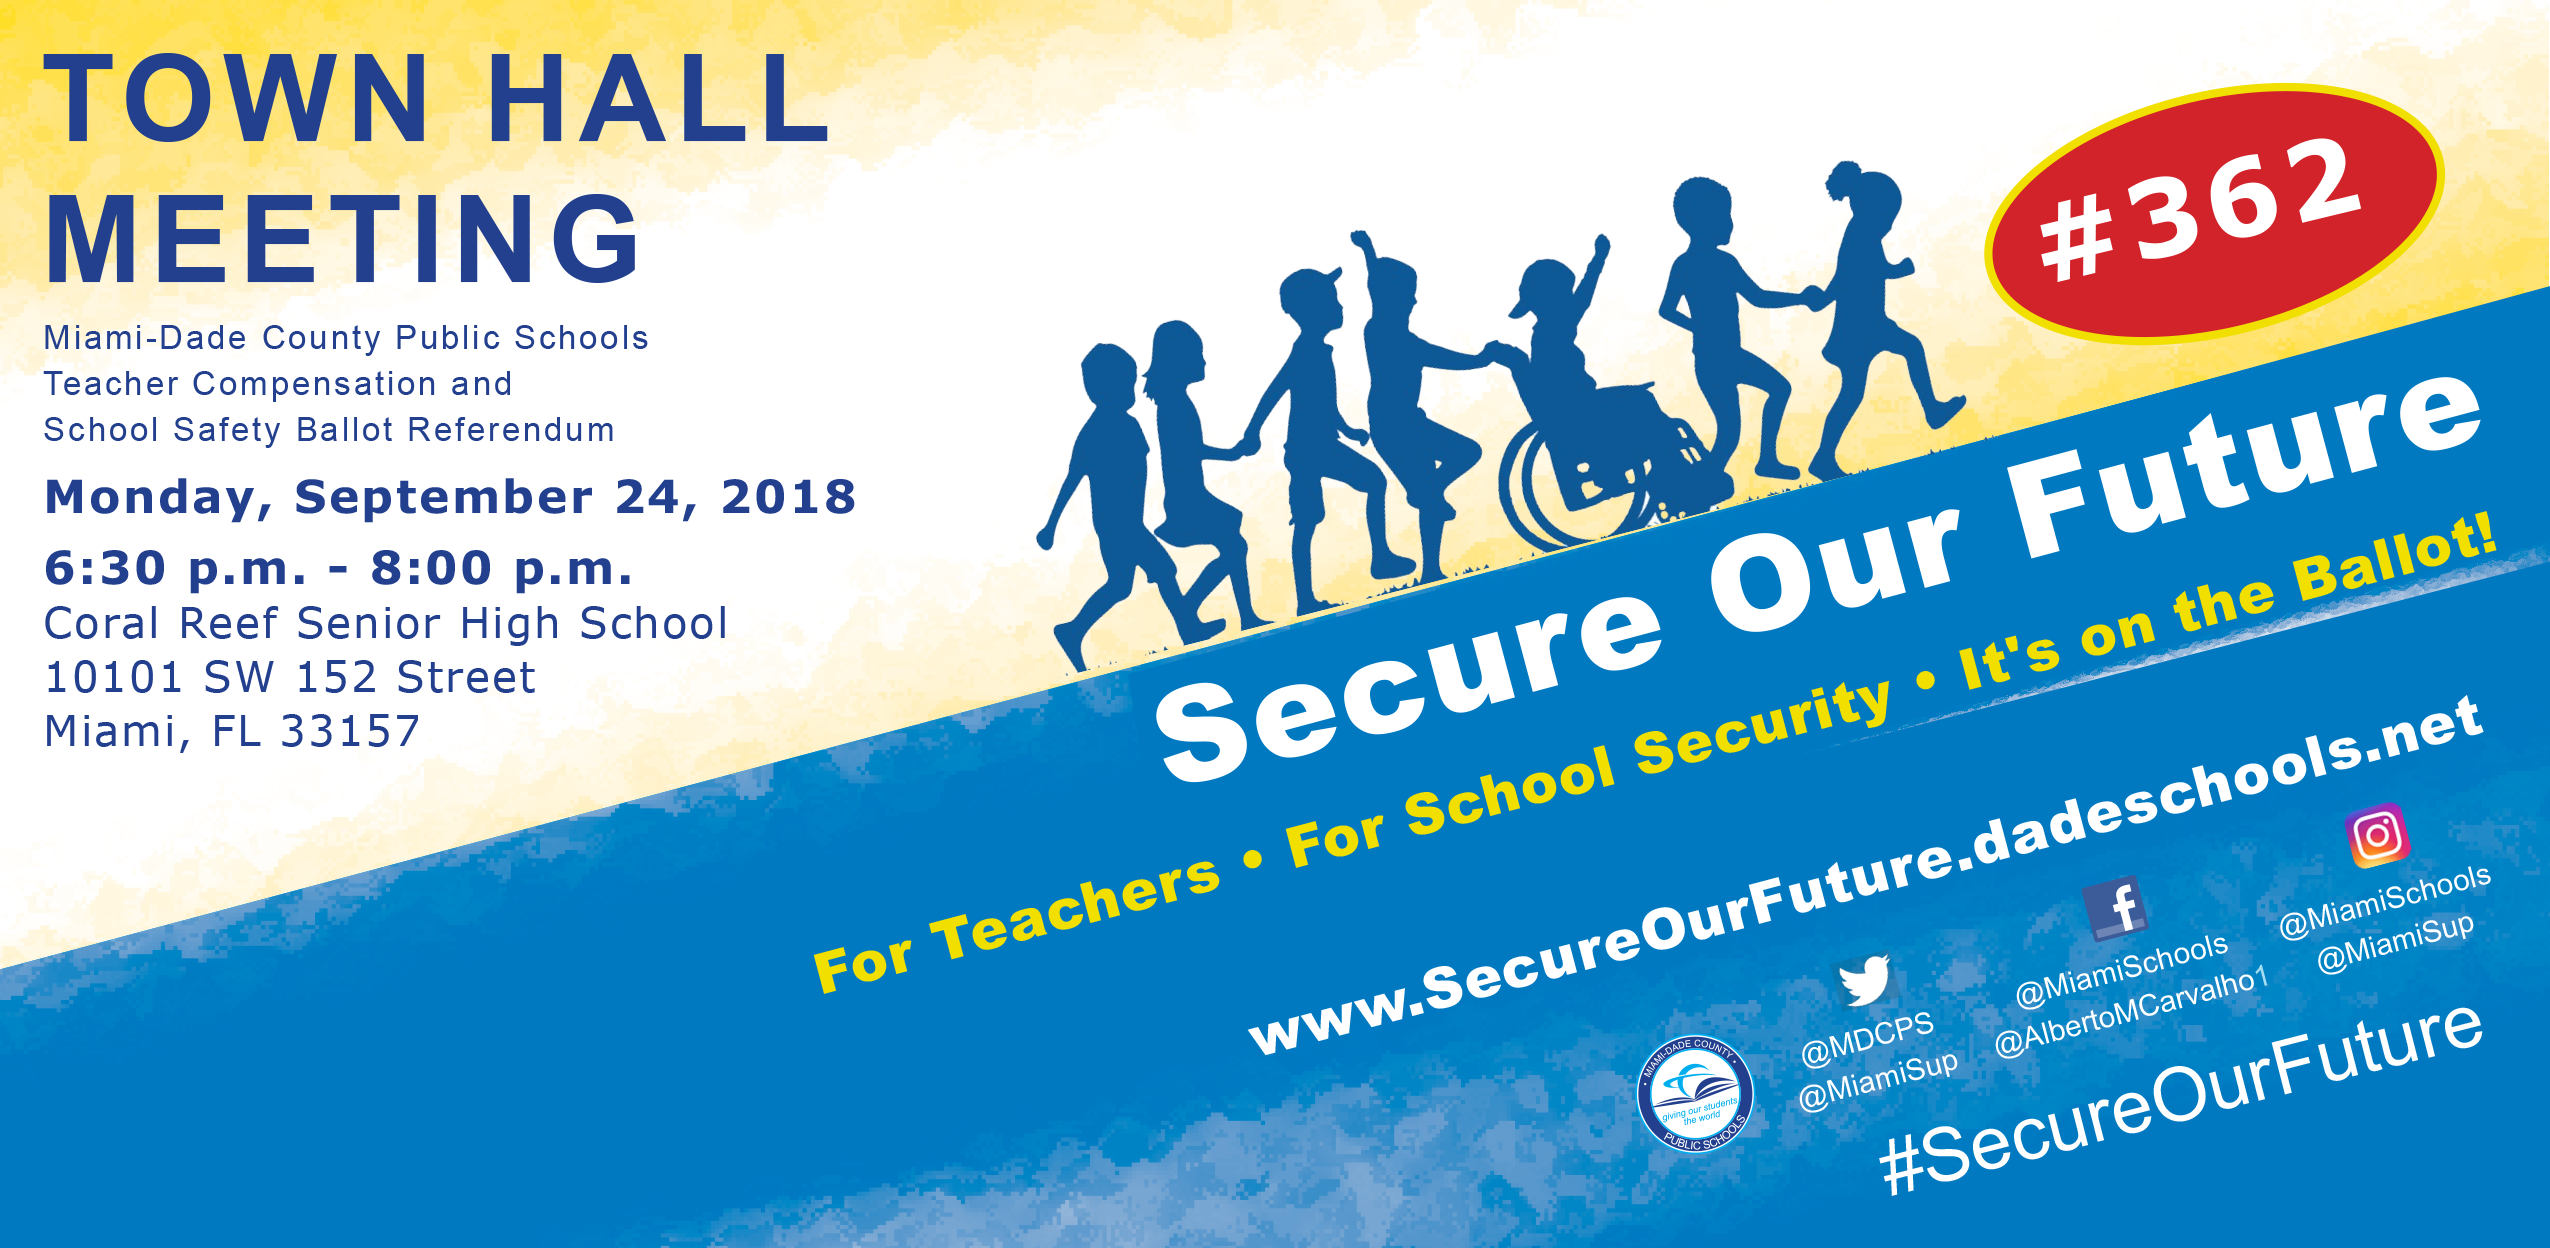 Town Hall Meeting – Secure our Future @ Coral Reef Senior High School